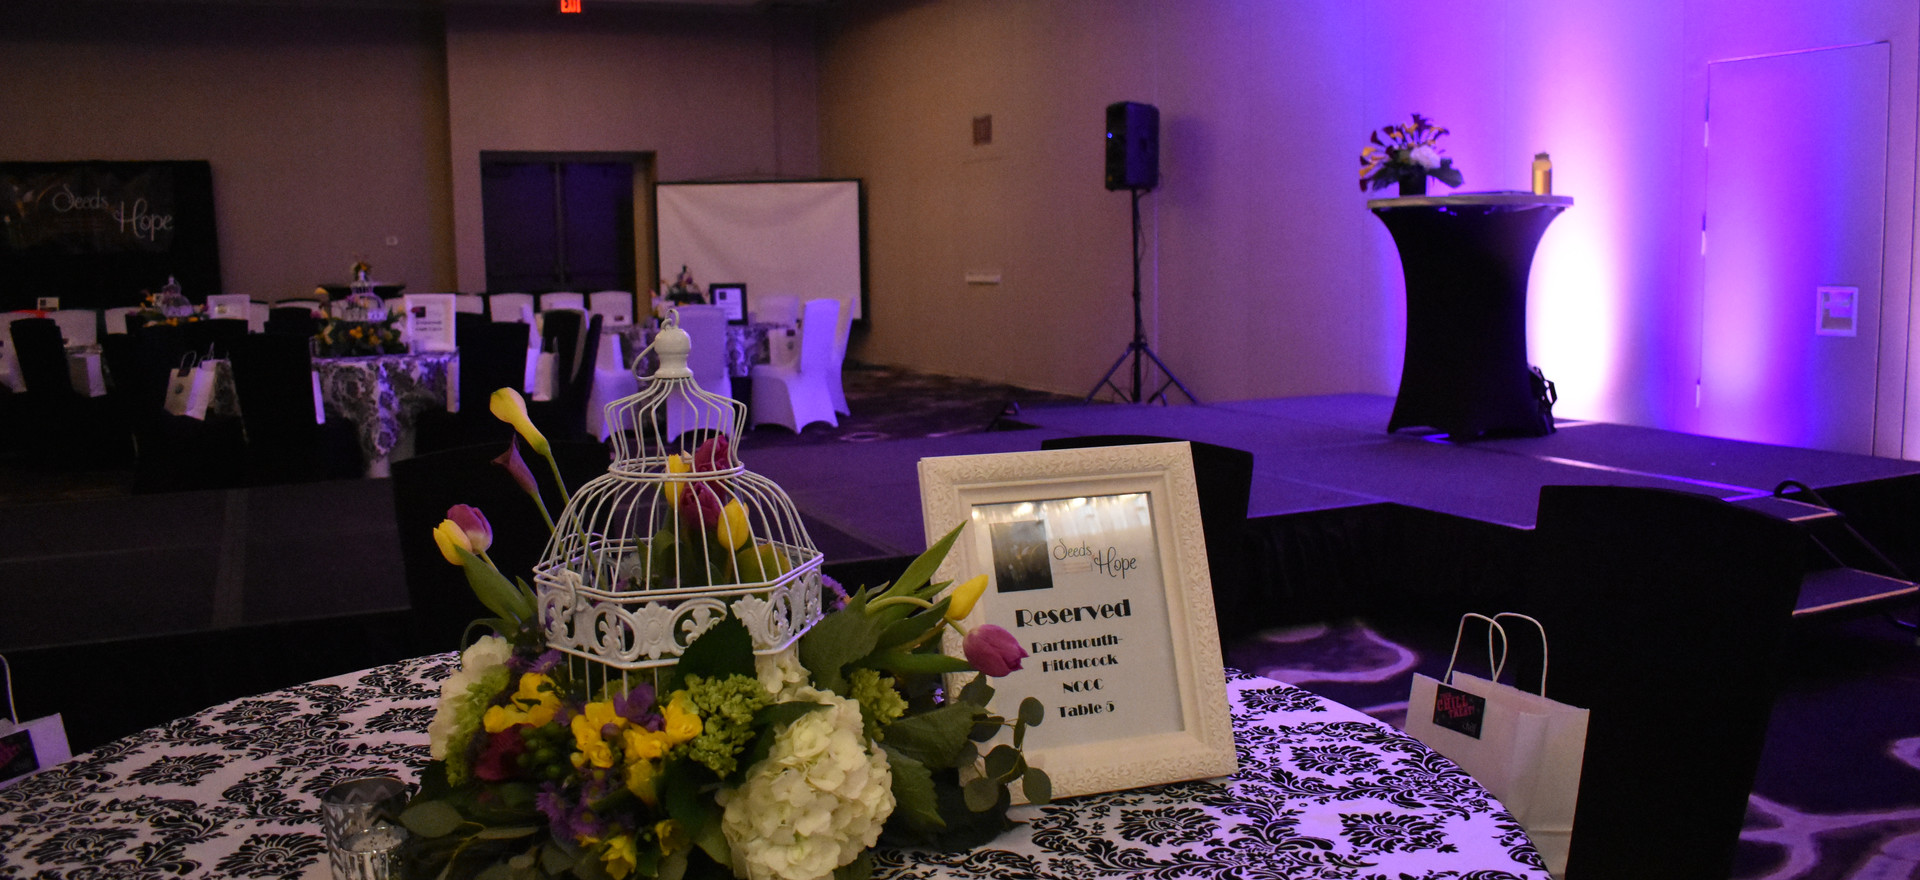 2018 Seeds of Hope Fashion Show Fundraiser for Dartmouth-Hitchcock Norris Cotton Cancer Center